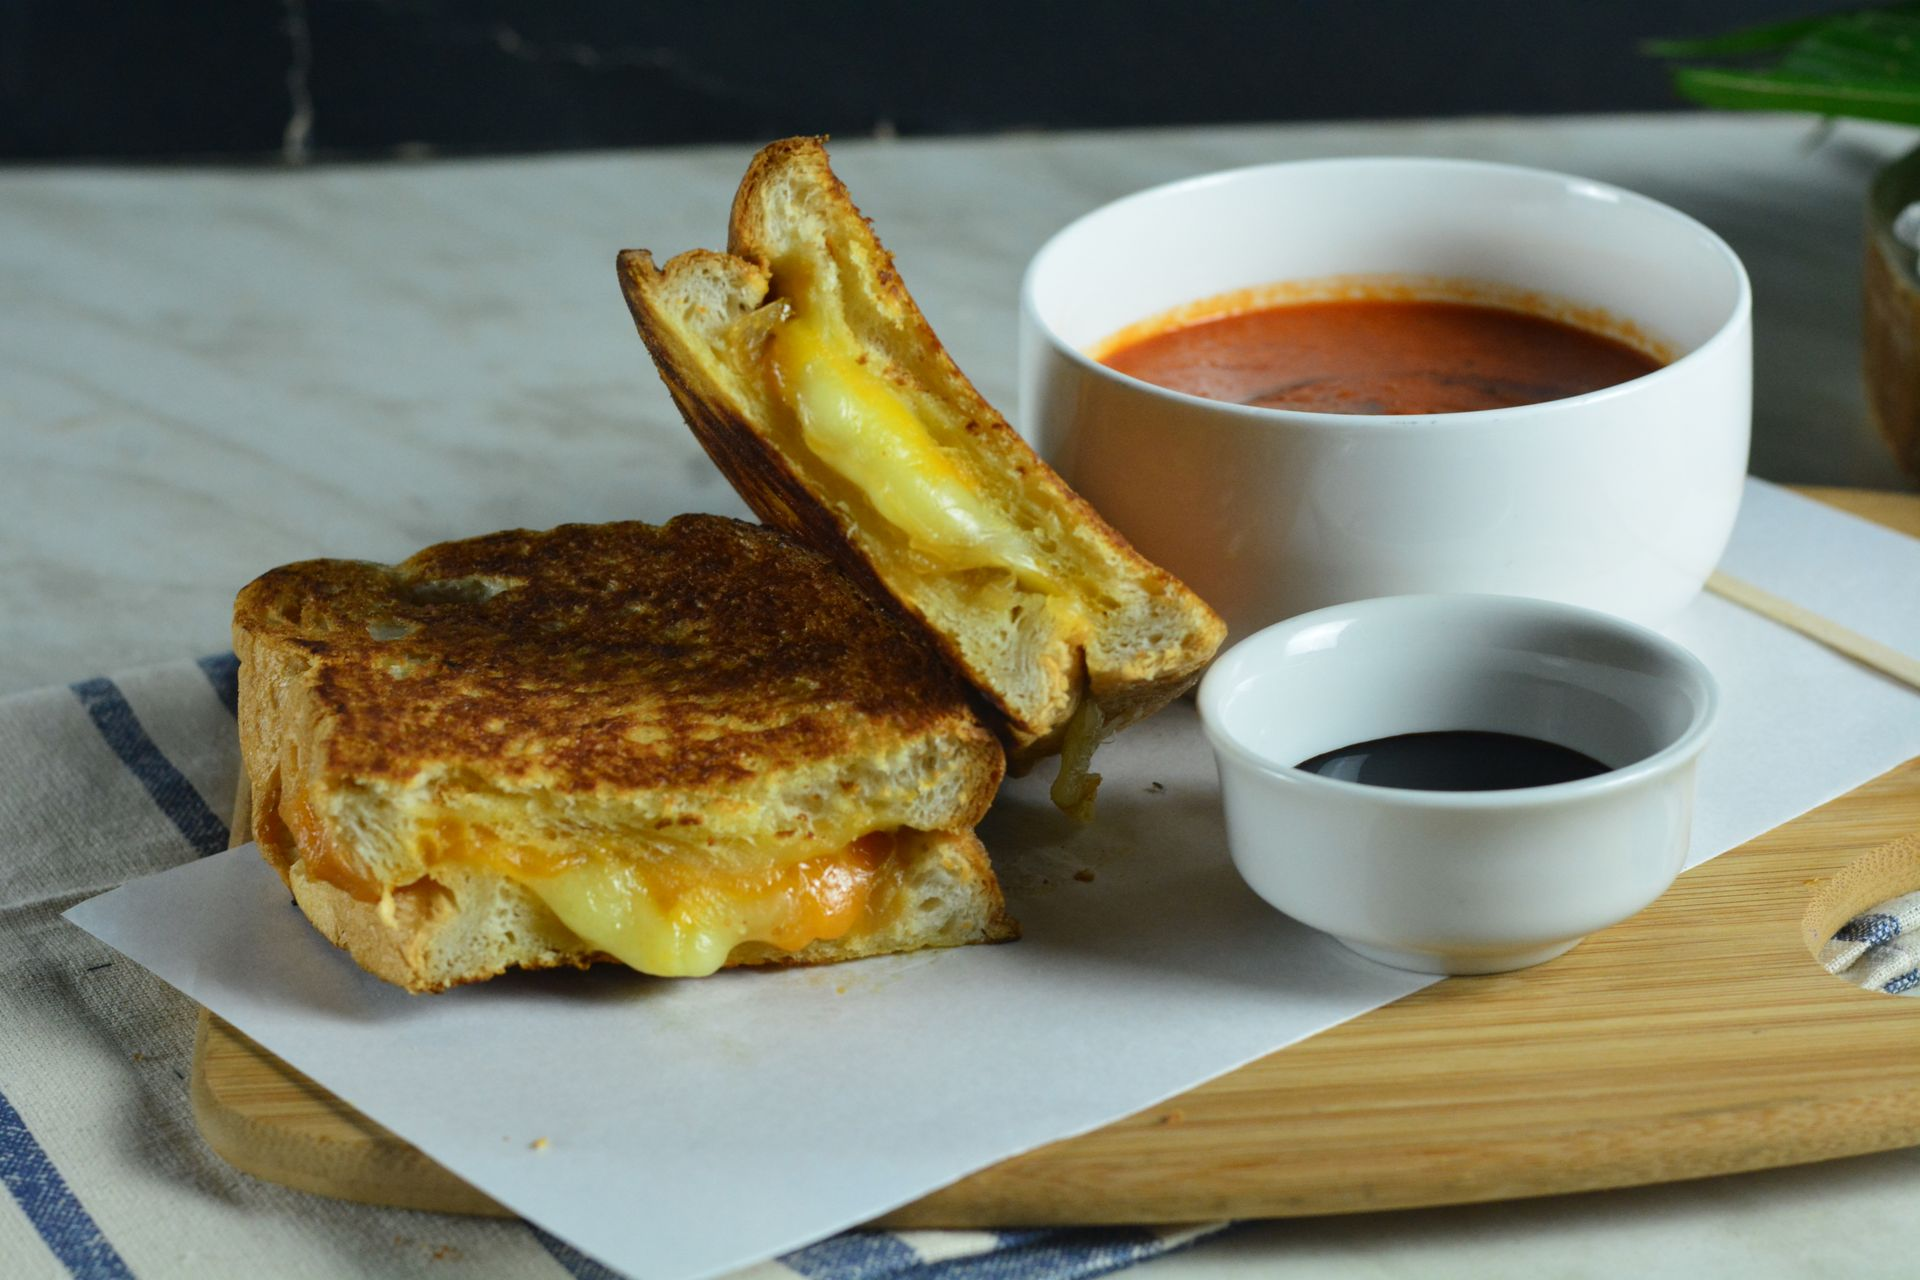 Grilled Cheese Sandwich & Tomato Soup